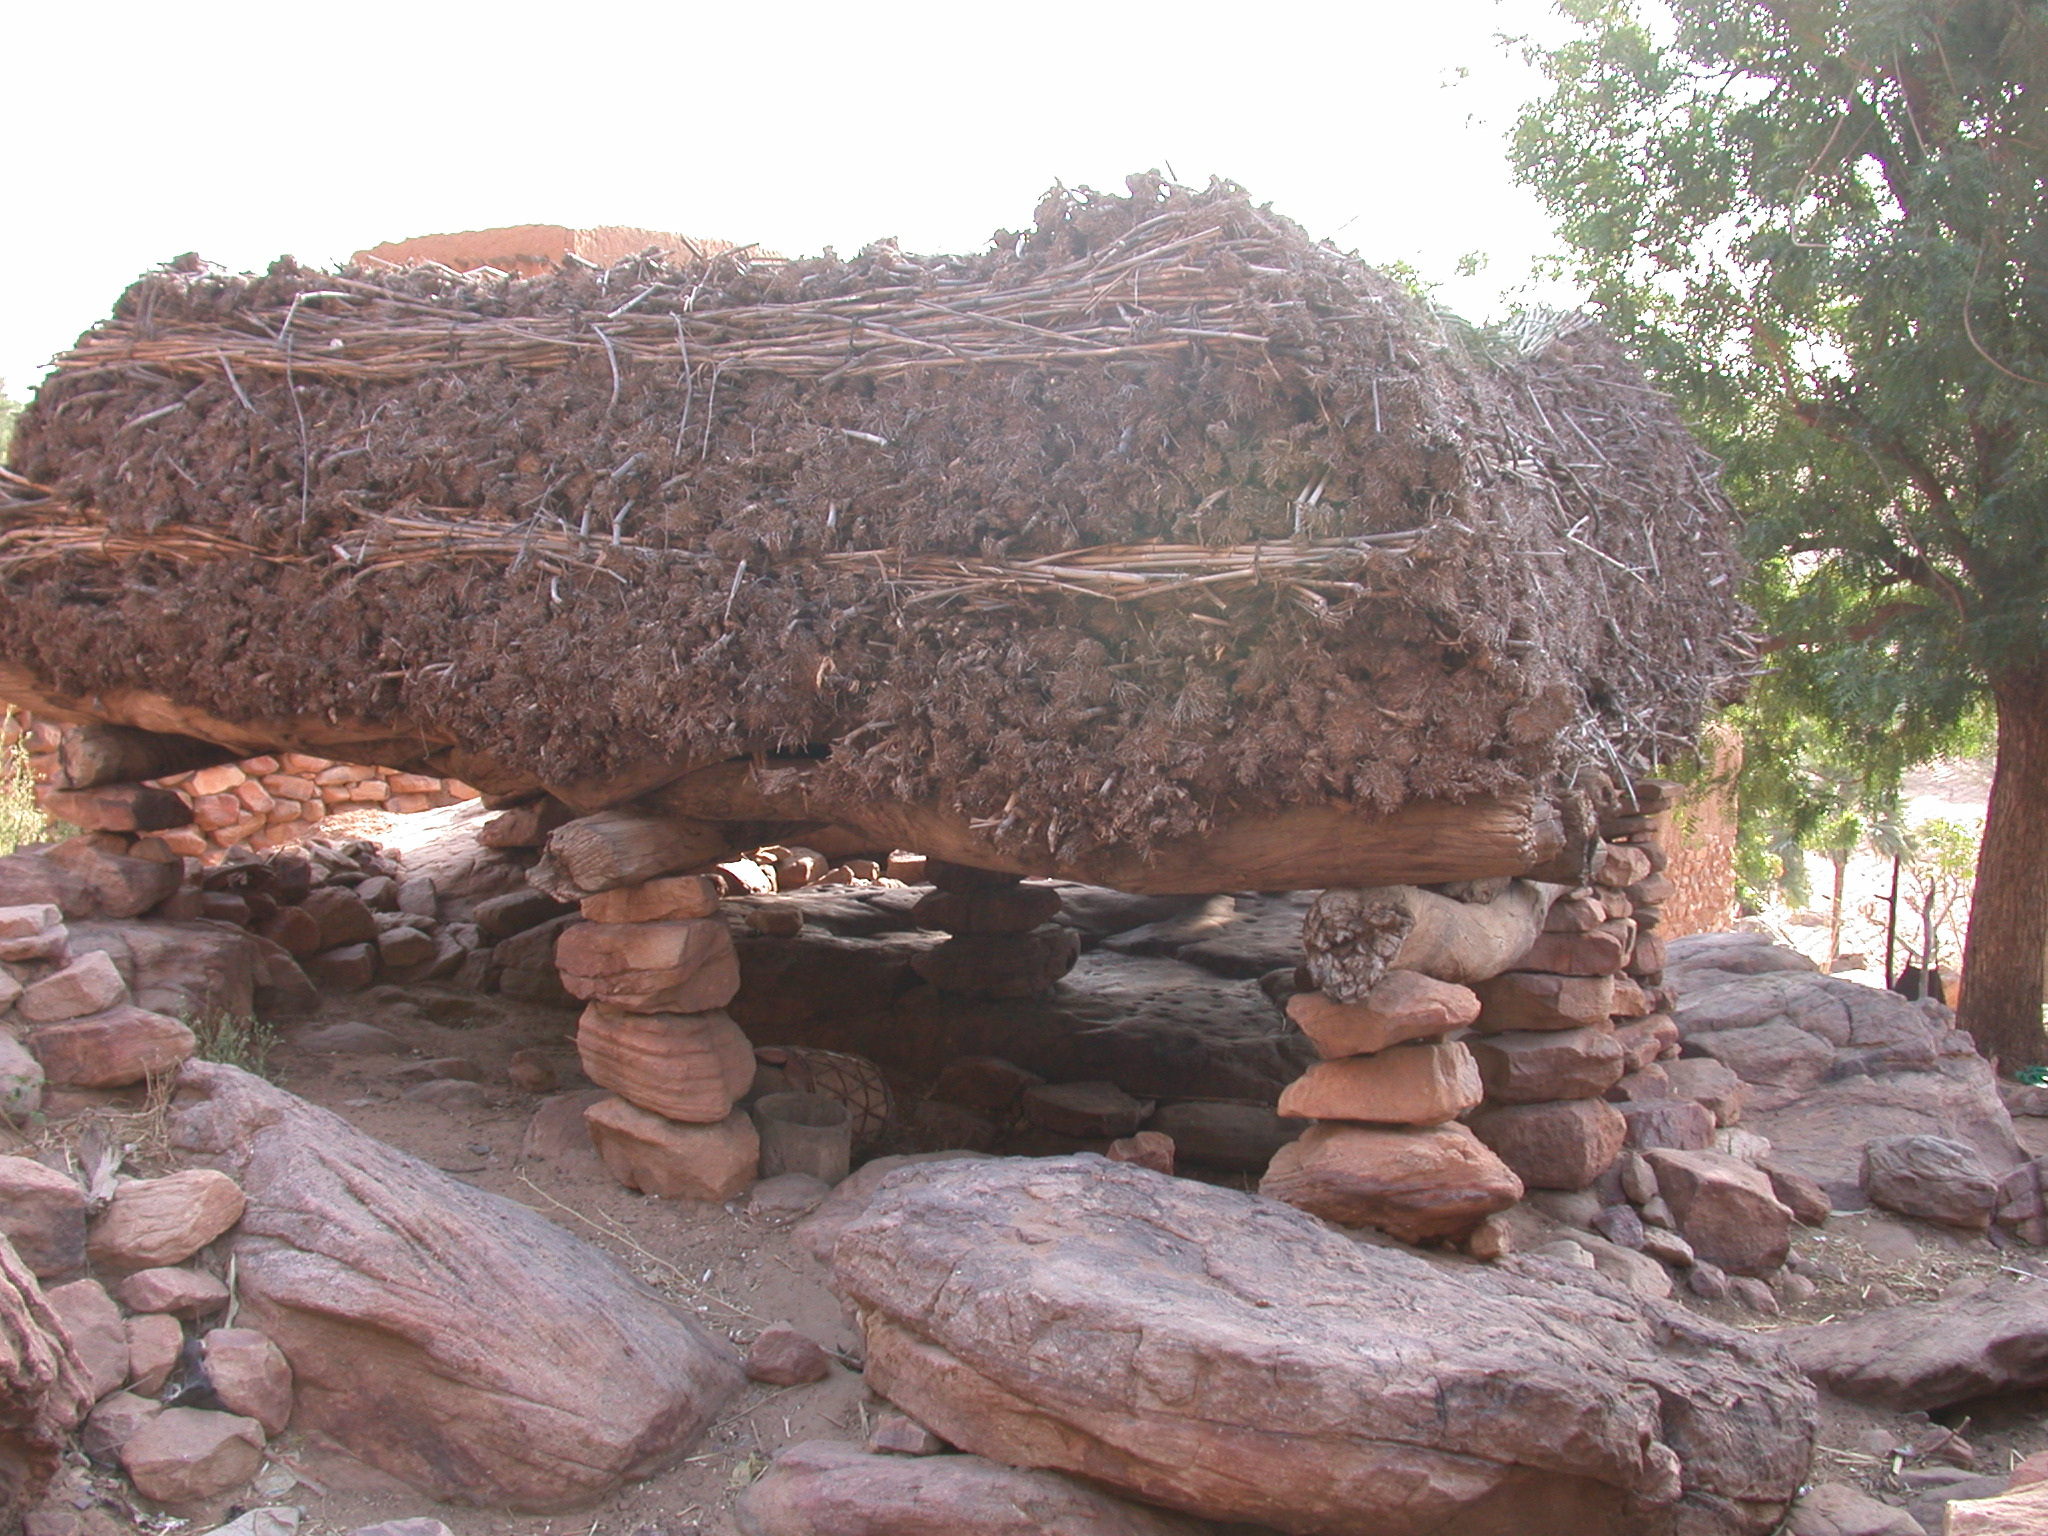 Storage Platform, Ennde Village, Dogon Country, Mali